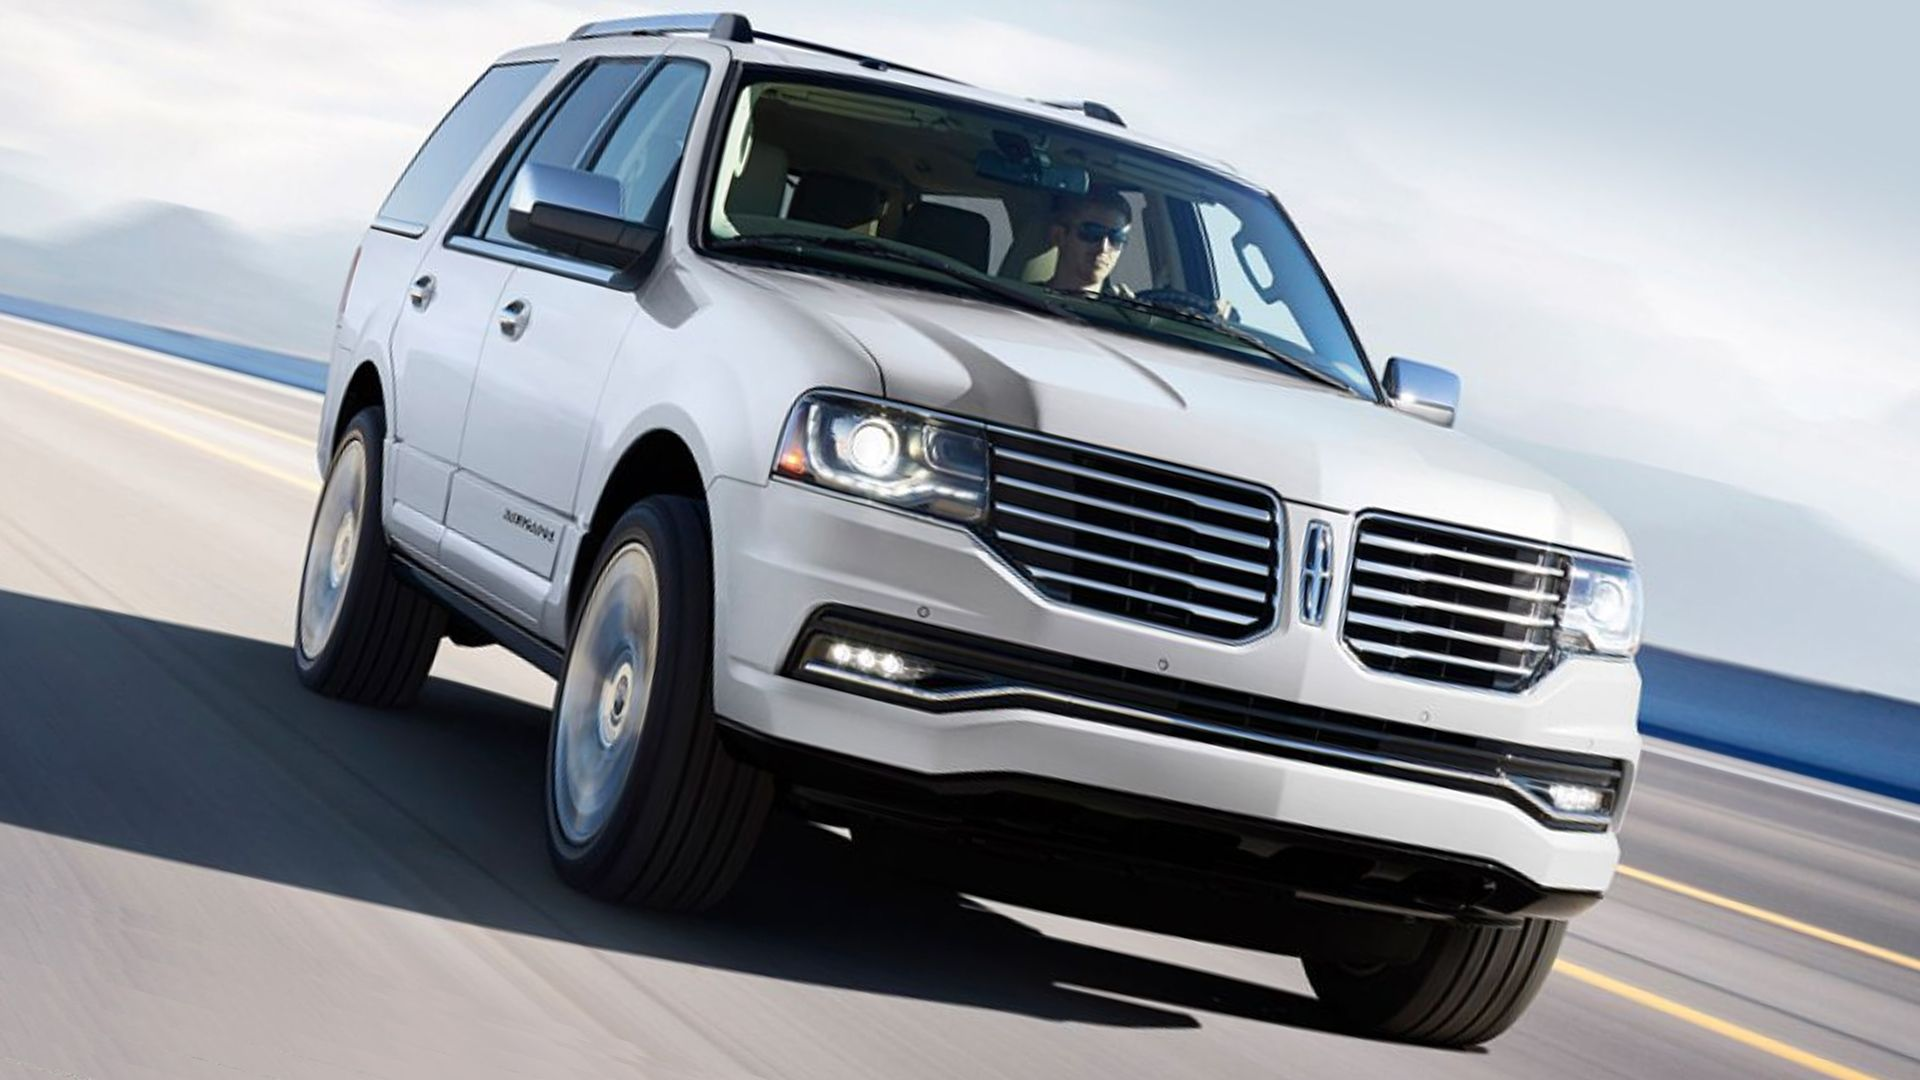 New 2018 Lincoln Navigator Release Date and Price